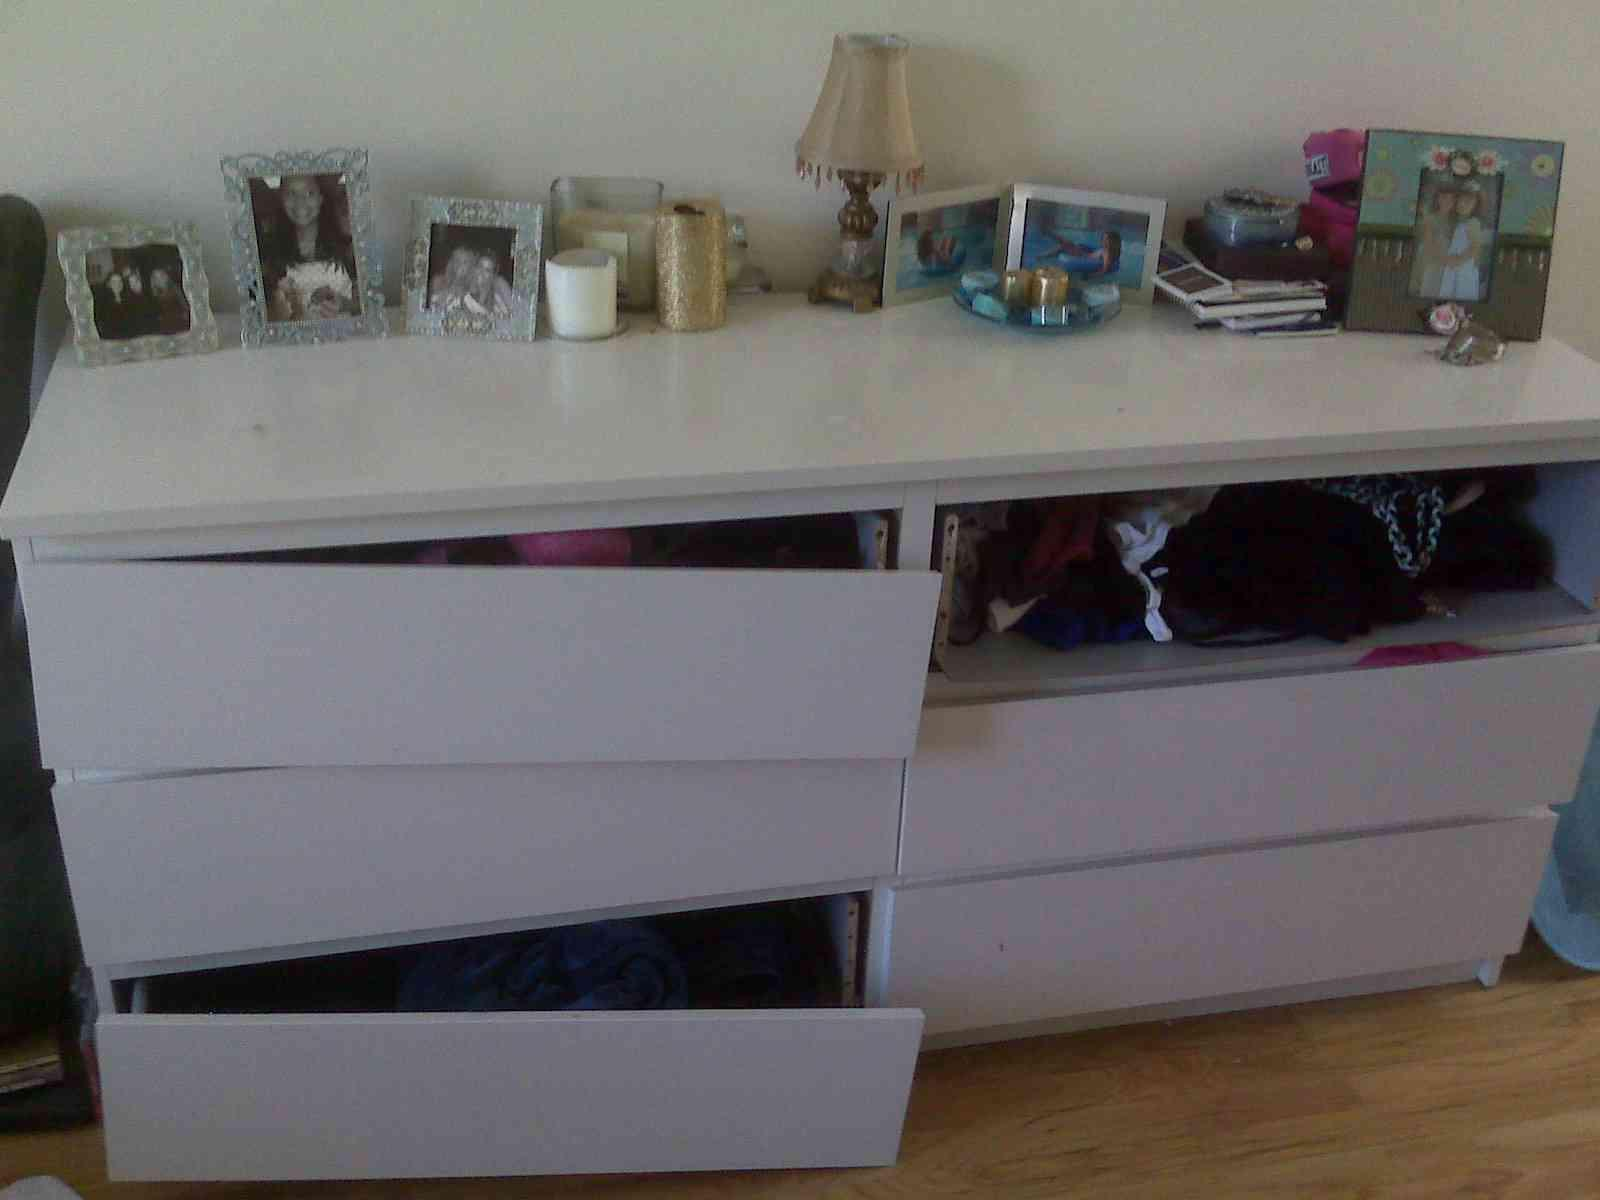 IKEA Malm 6 Drawer Dresser Instructions